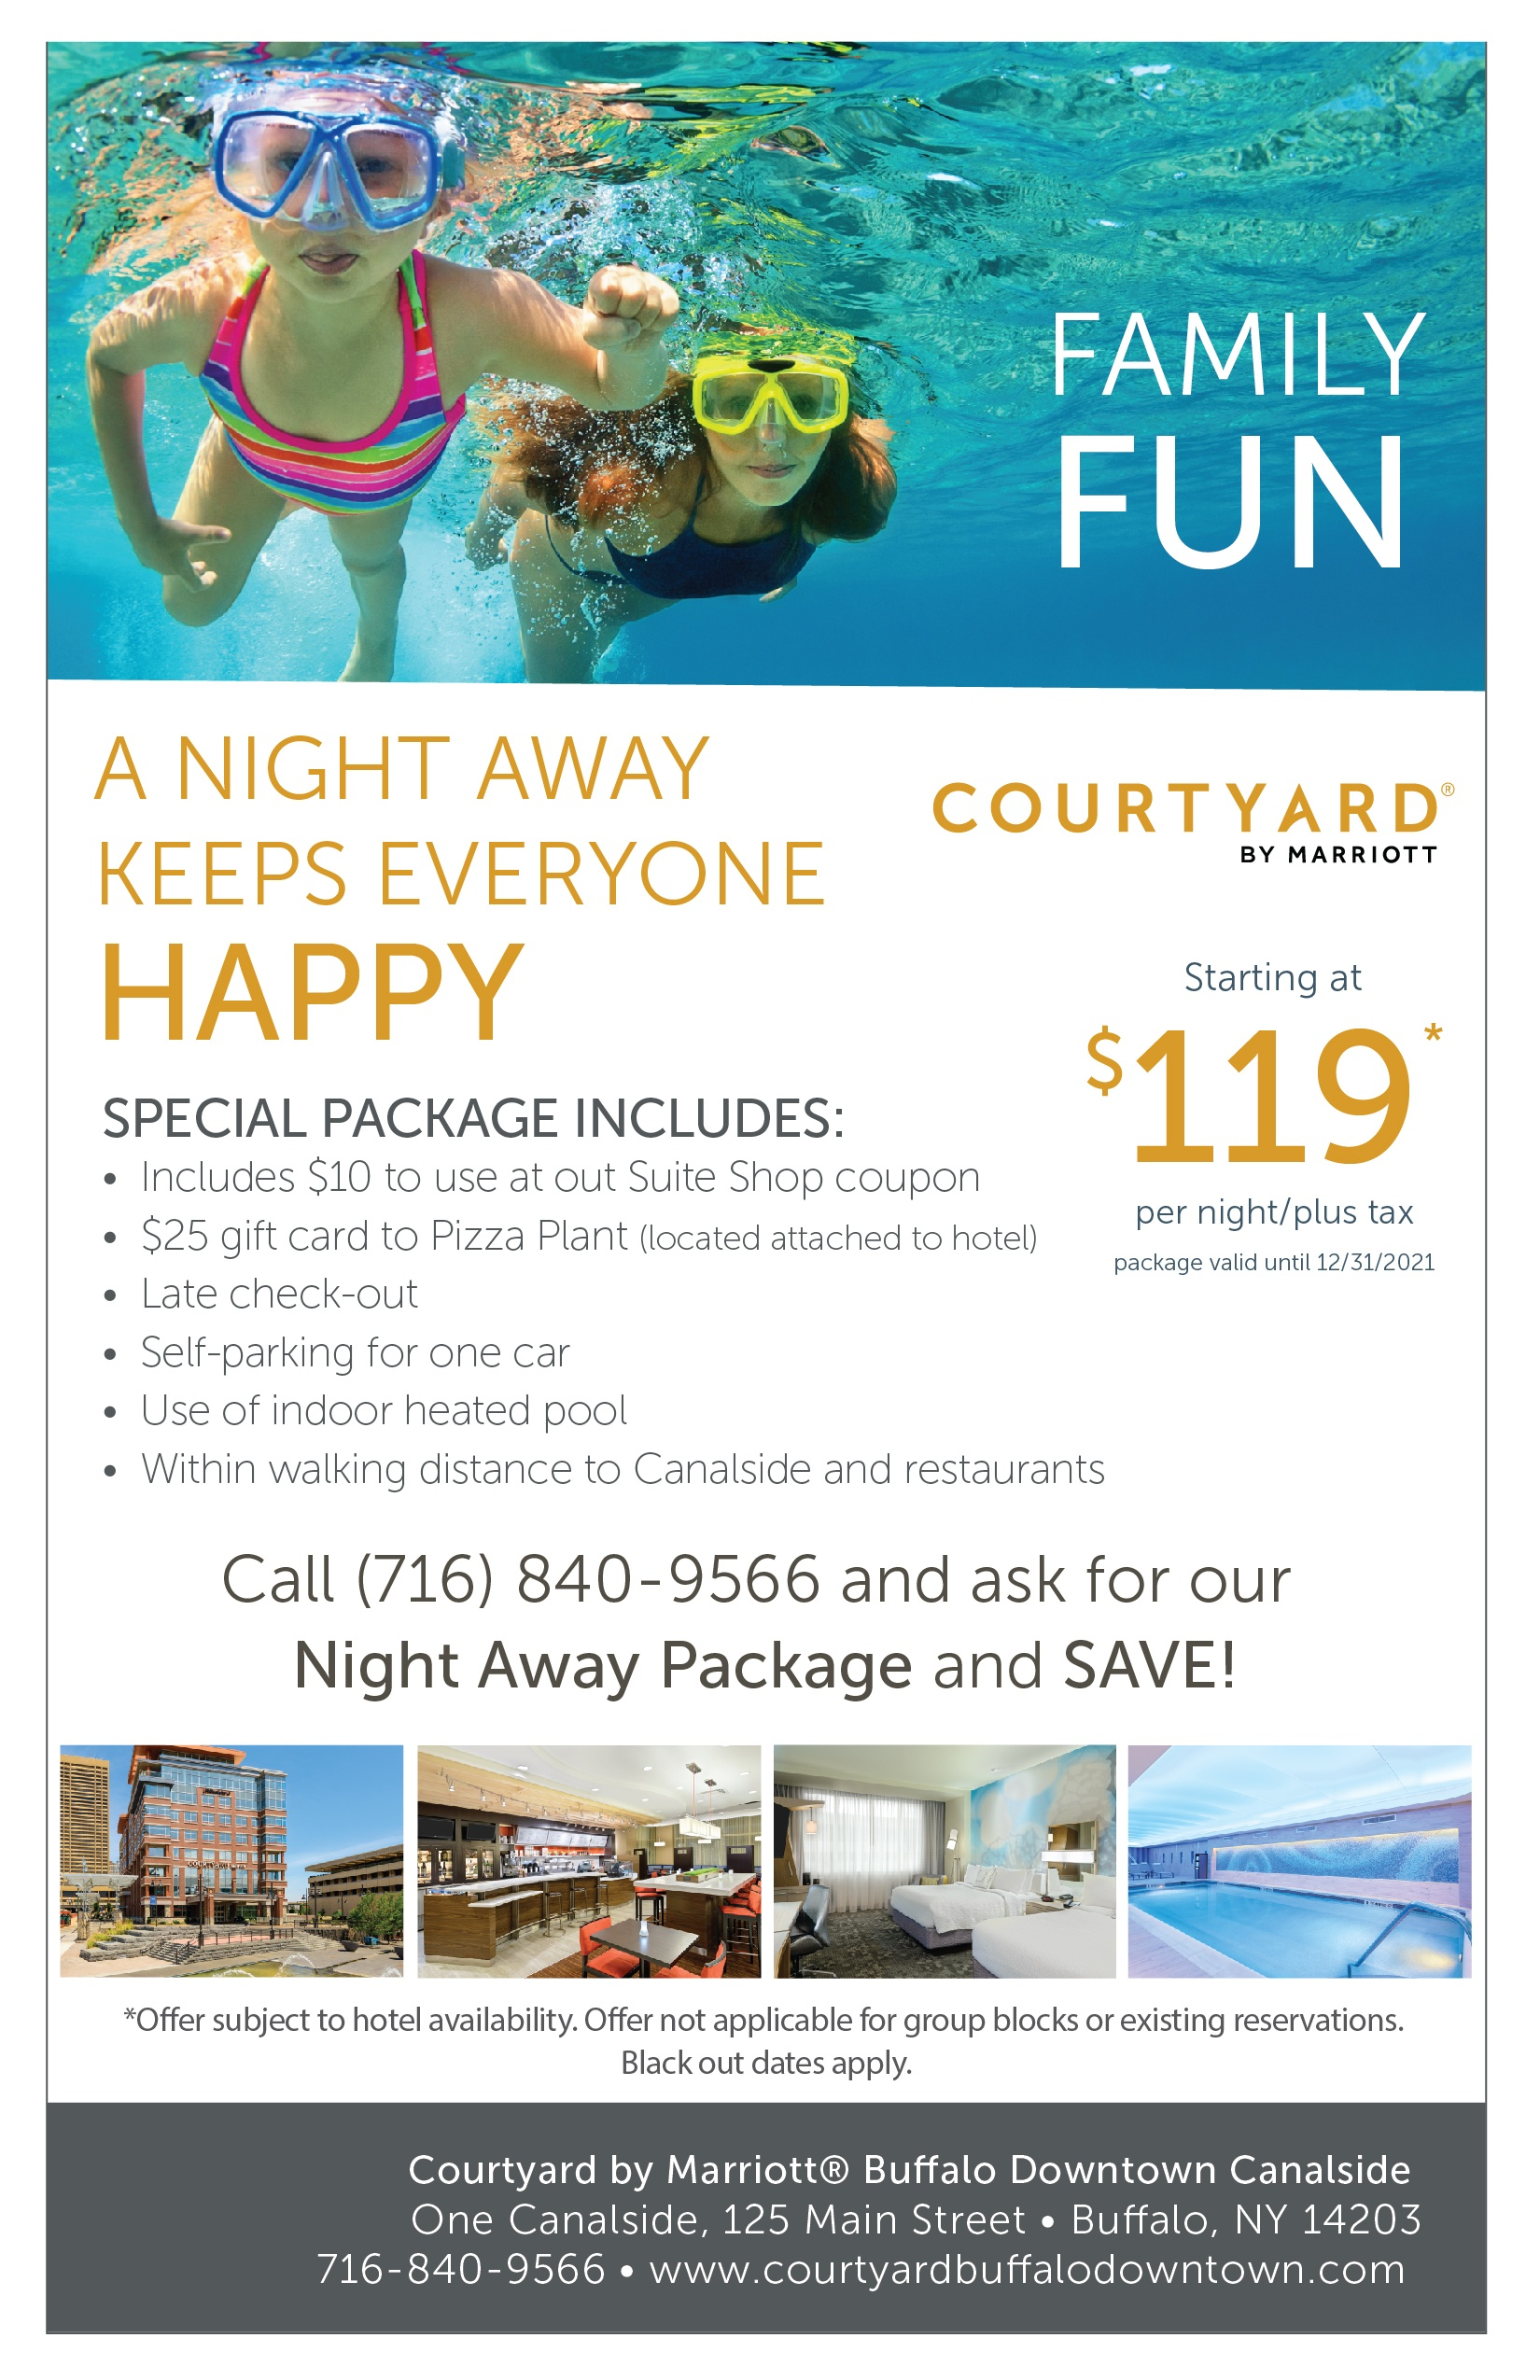 A night away at the Marriott Canalside